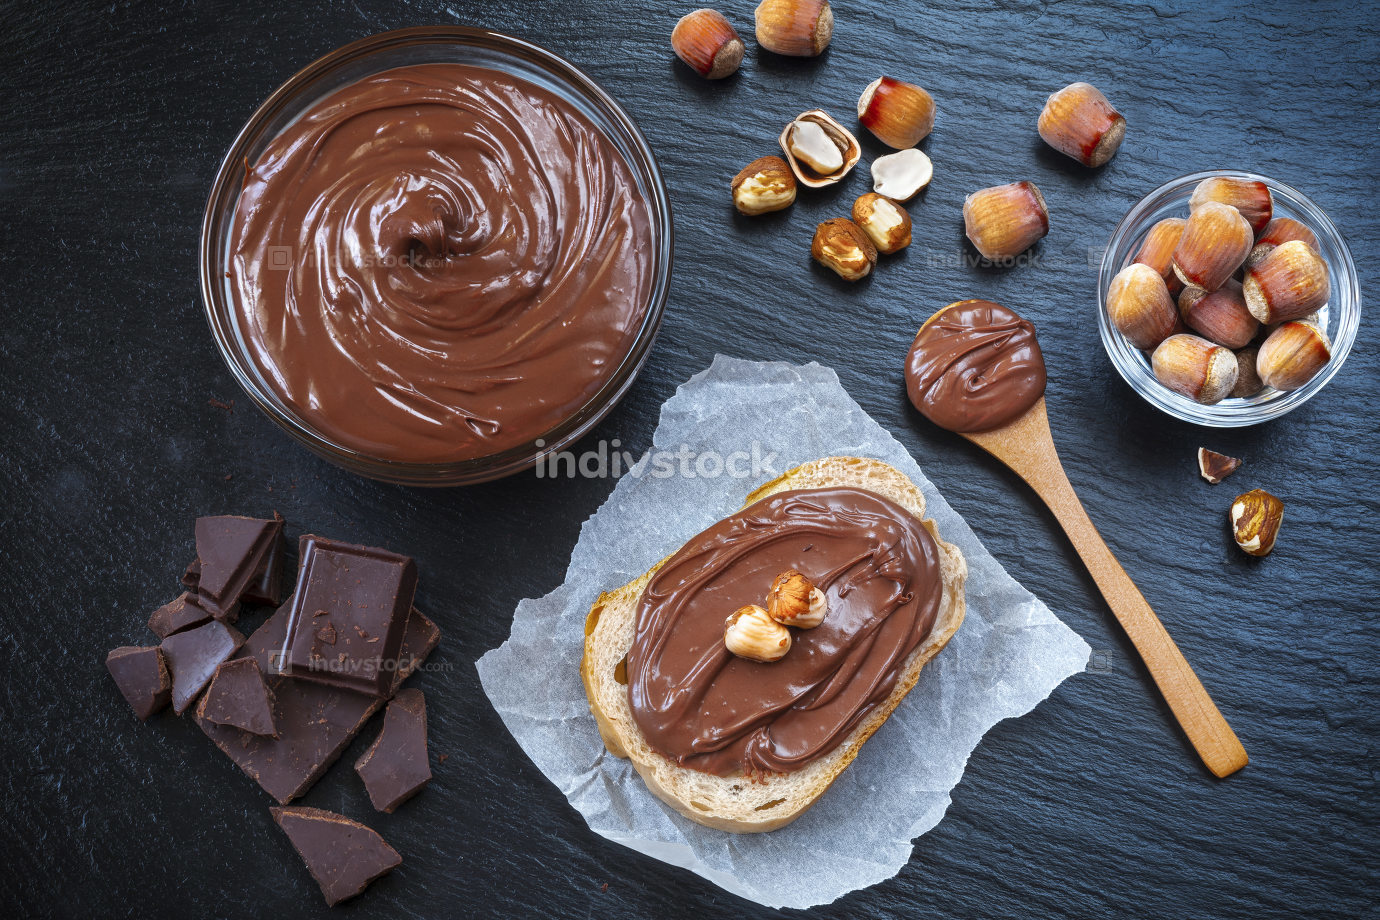 Breakfast with chocolate spread in glass bowl